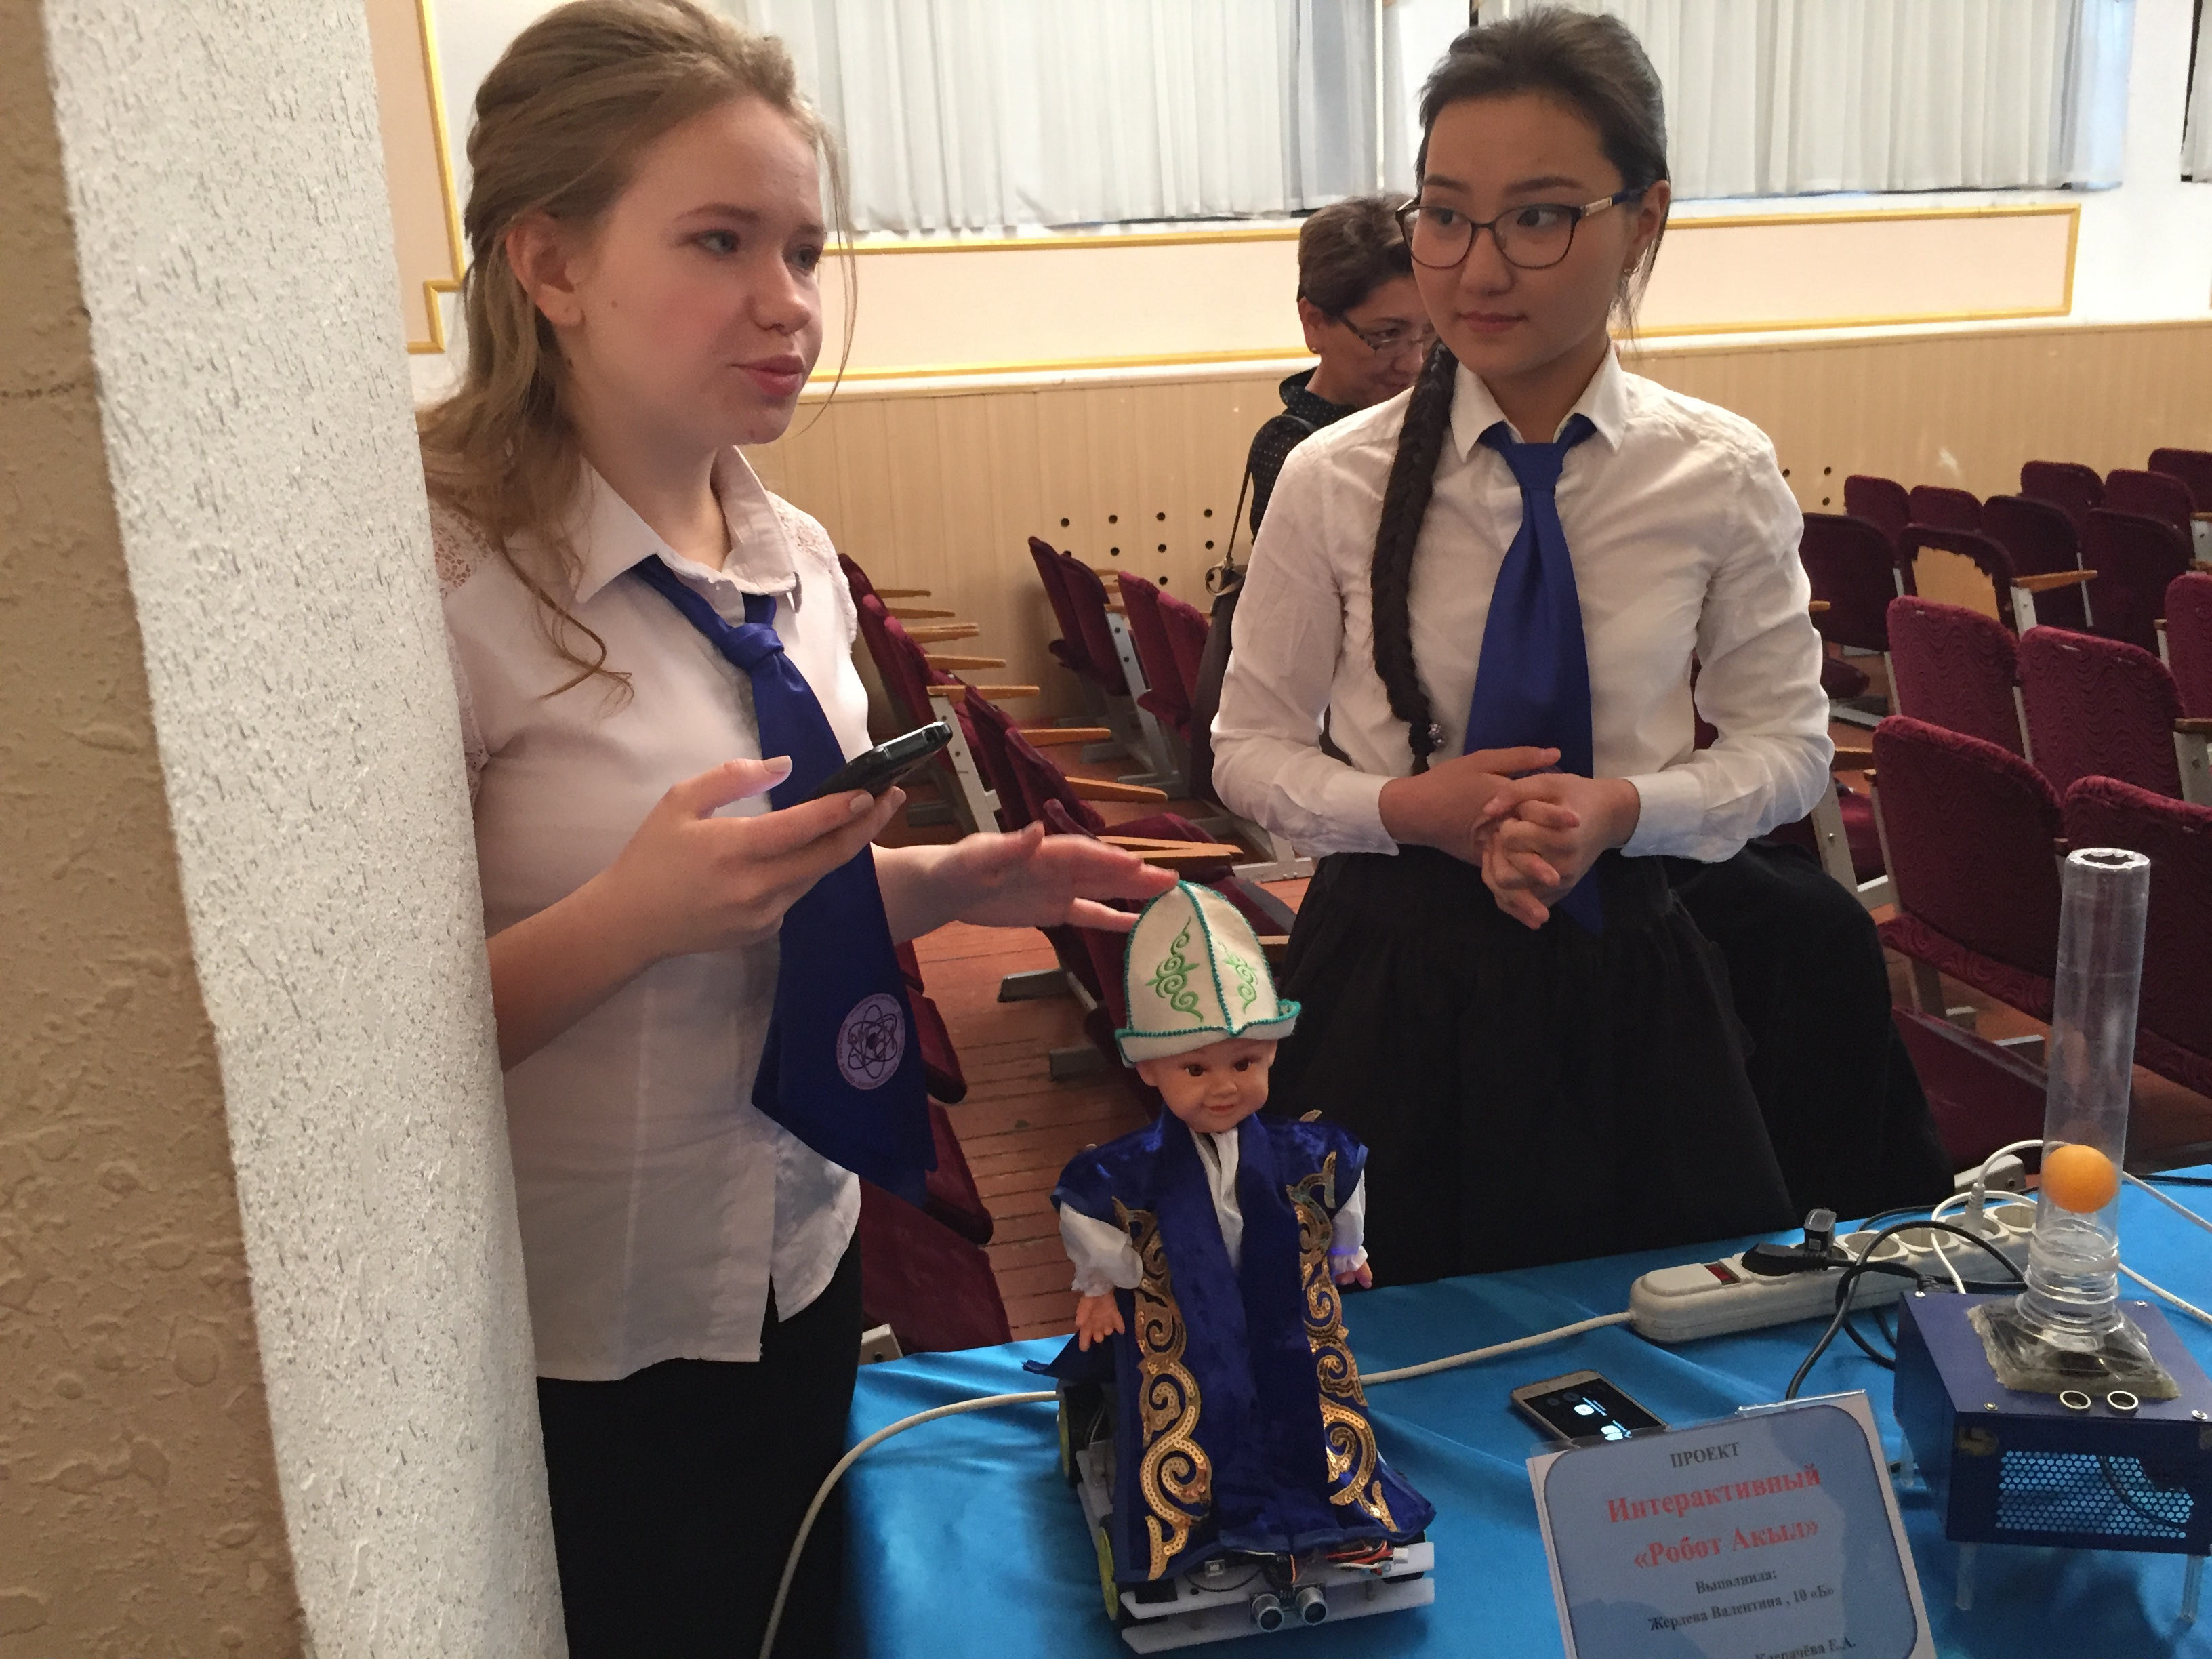 TechWomen Delegation Kyrgyzstan 2017 at Robotics Fair, Physics and Mathematics School‐Lyceum, Bishkek